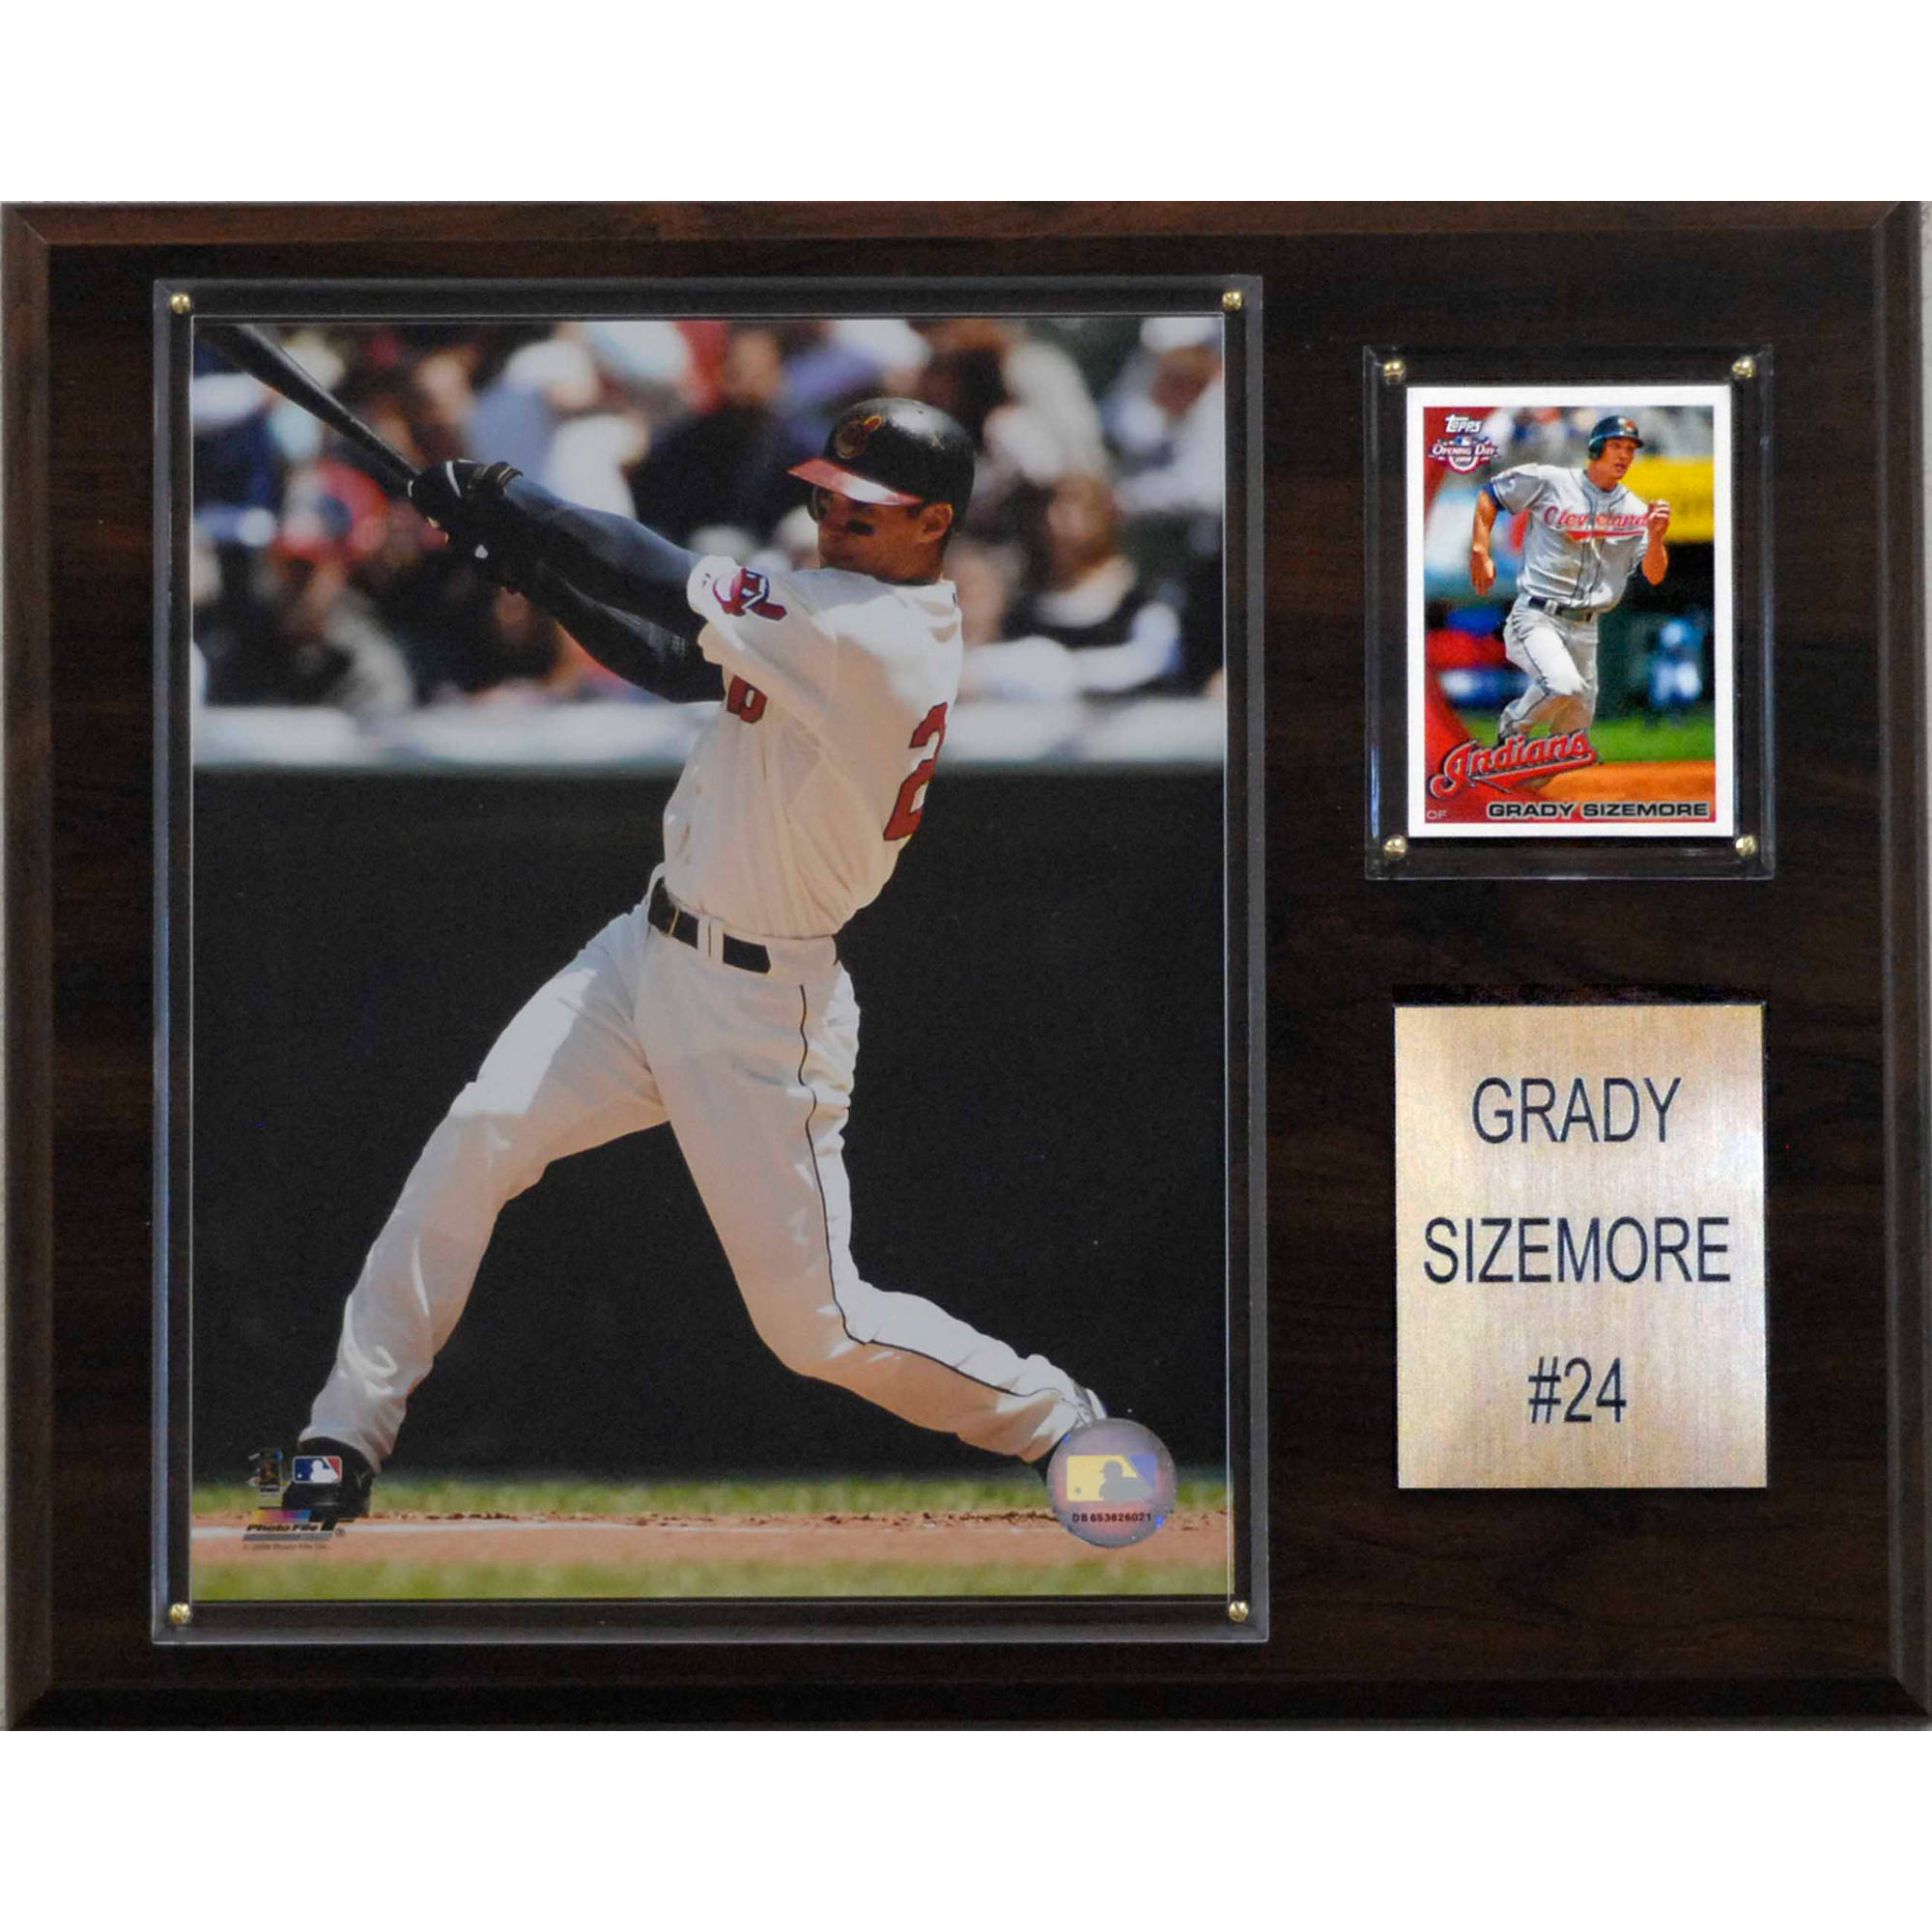 C&I Collectables MLB 12x15 Grady Sizemore Cleveland Indians Player Plaque